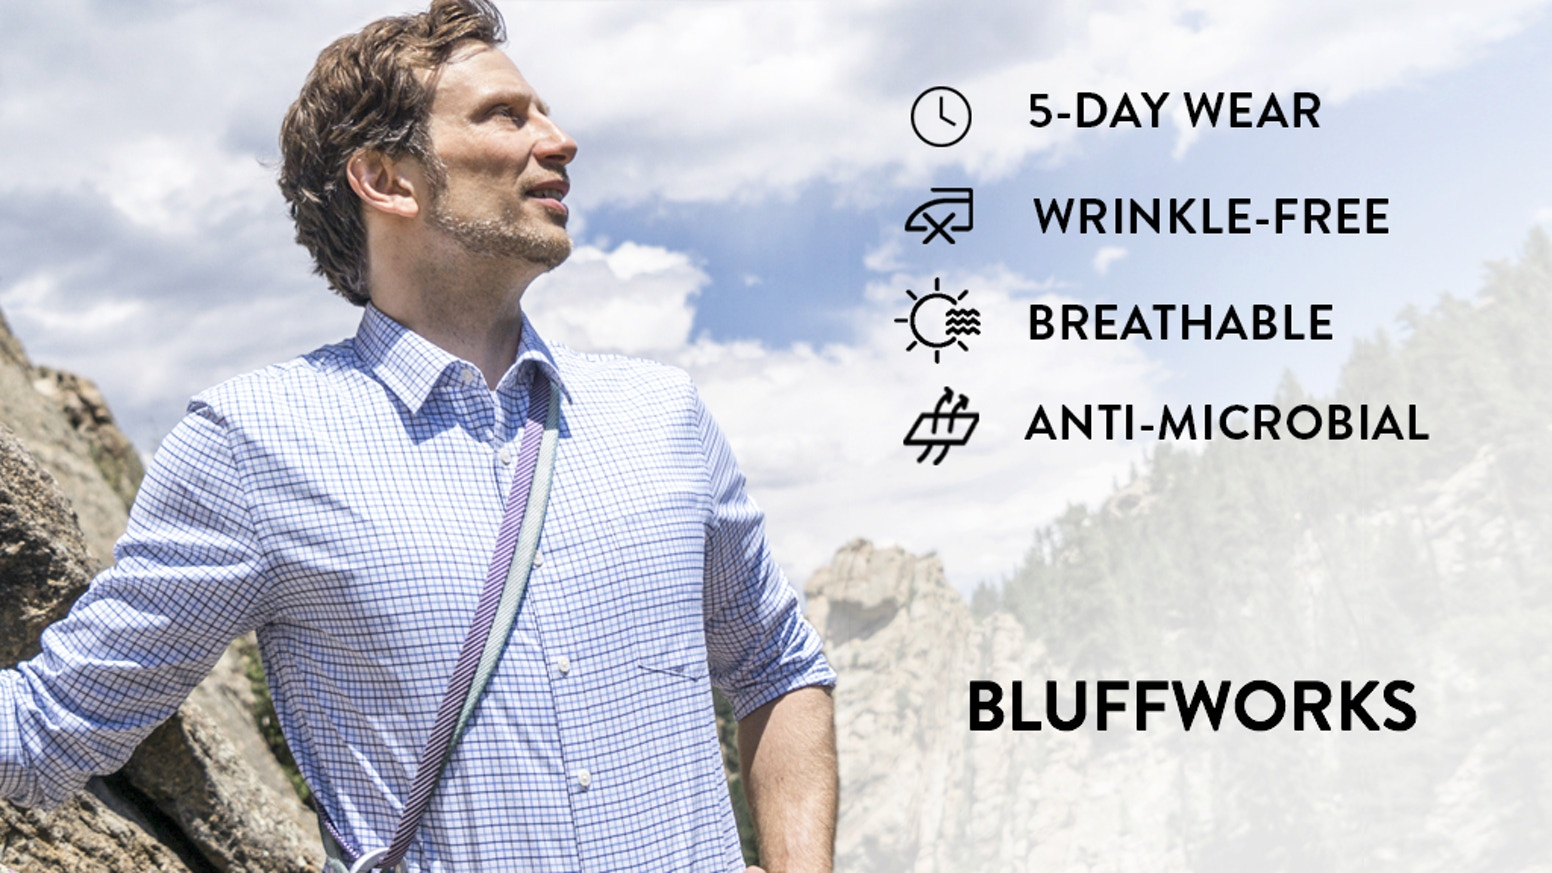 Finally, a hard working wrinkle-free shirt that doesn't feel synthetic and will stay fresh for five days.